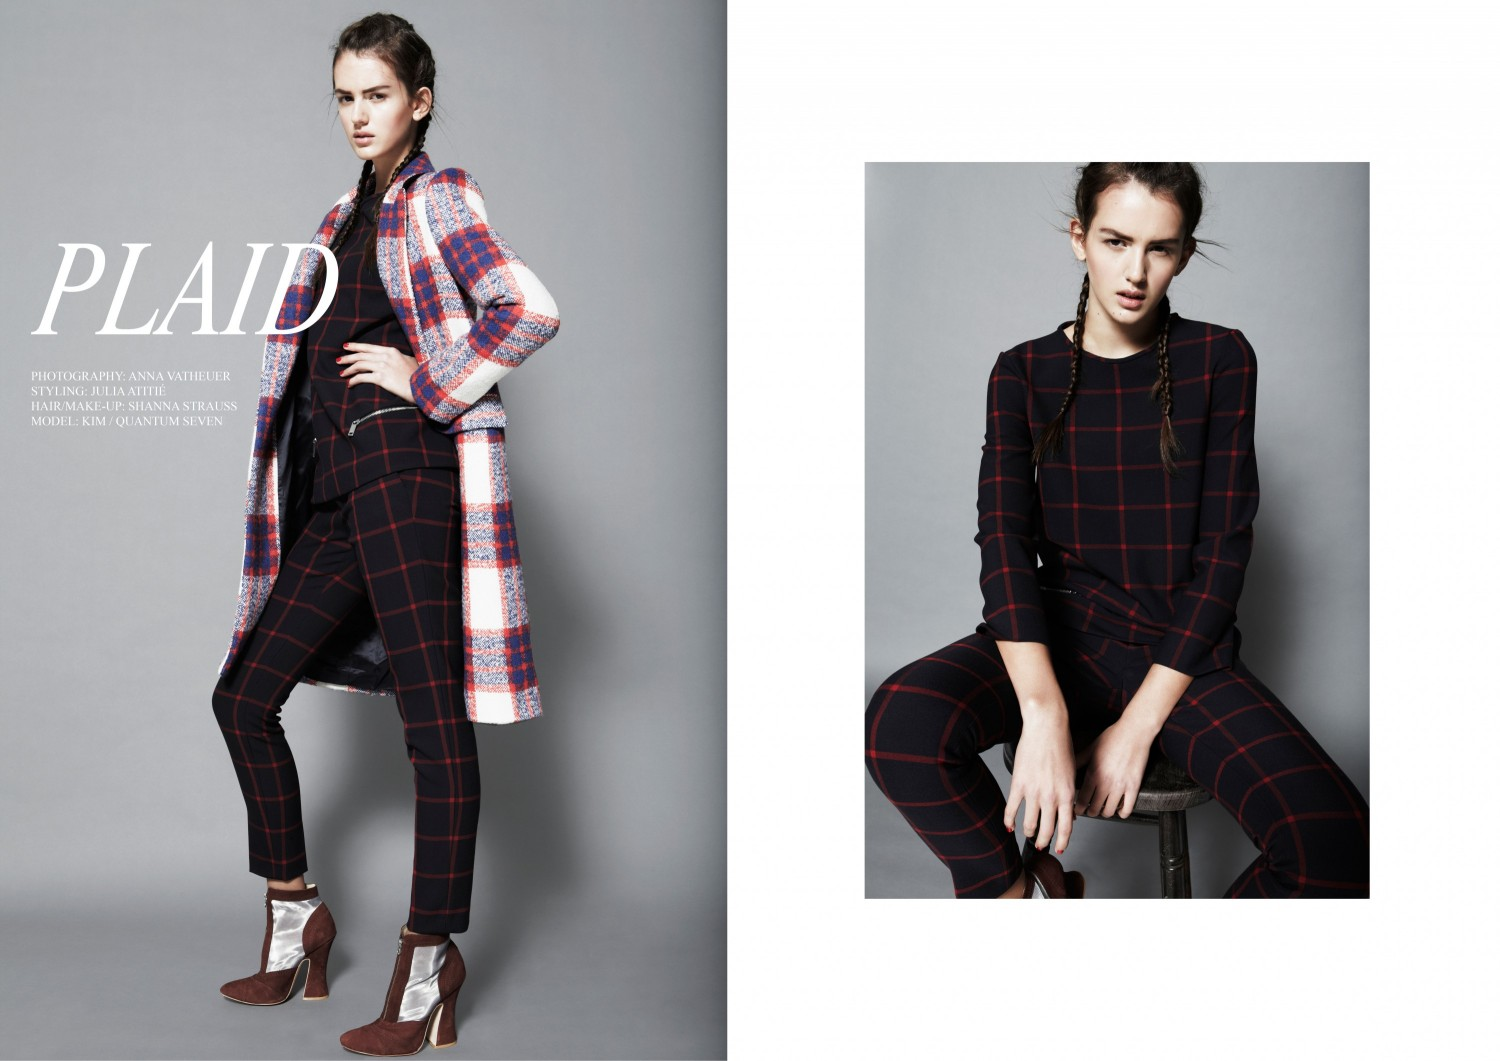 PLAID-001-neu1-e1453811215476.jpg